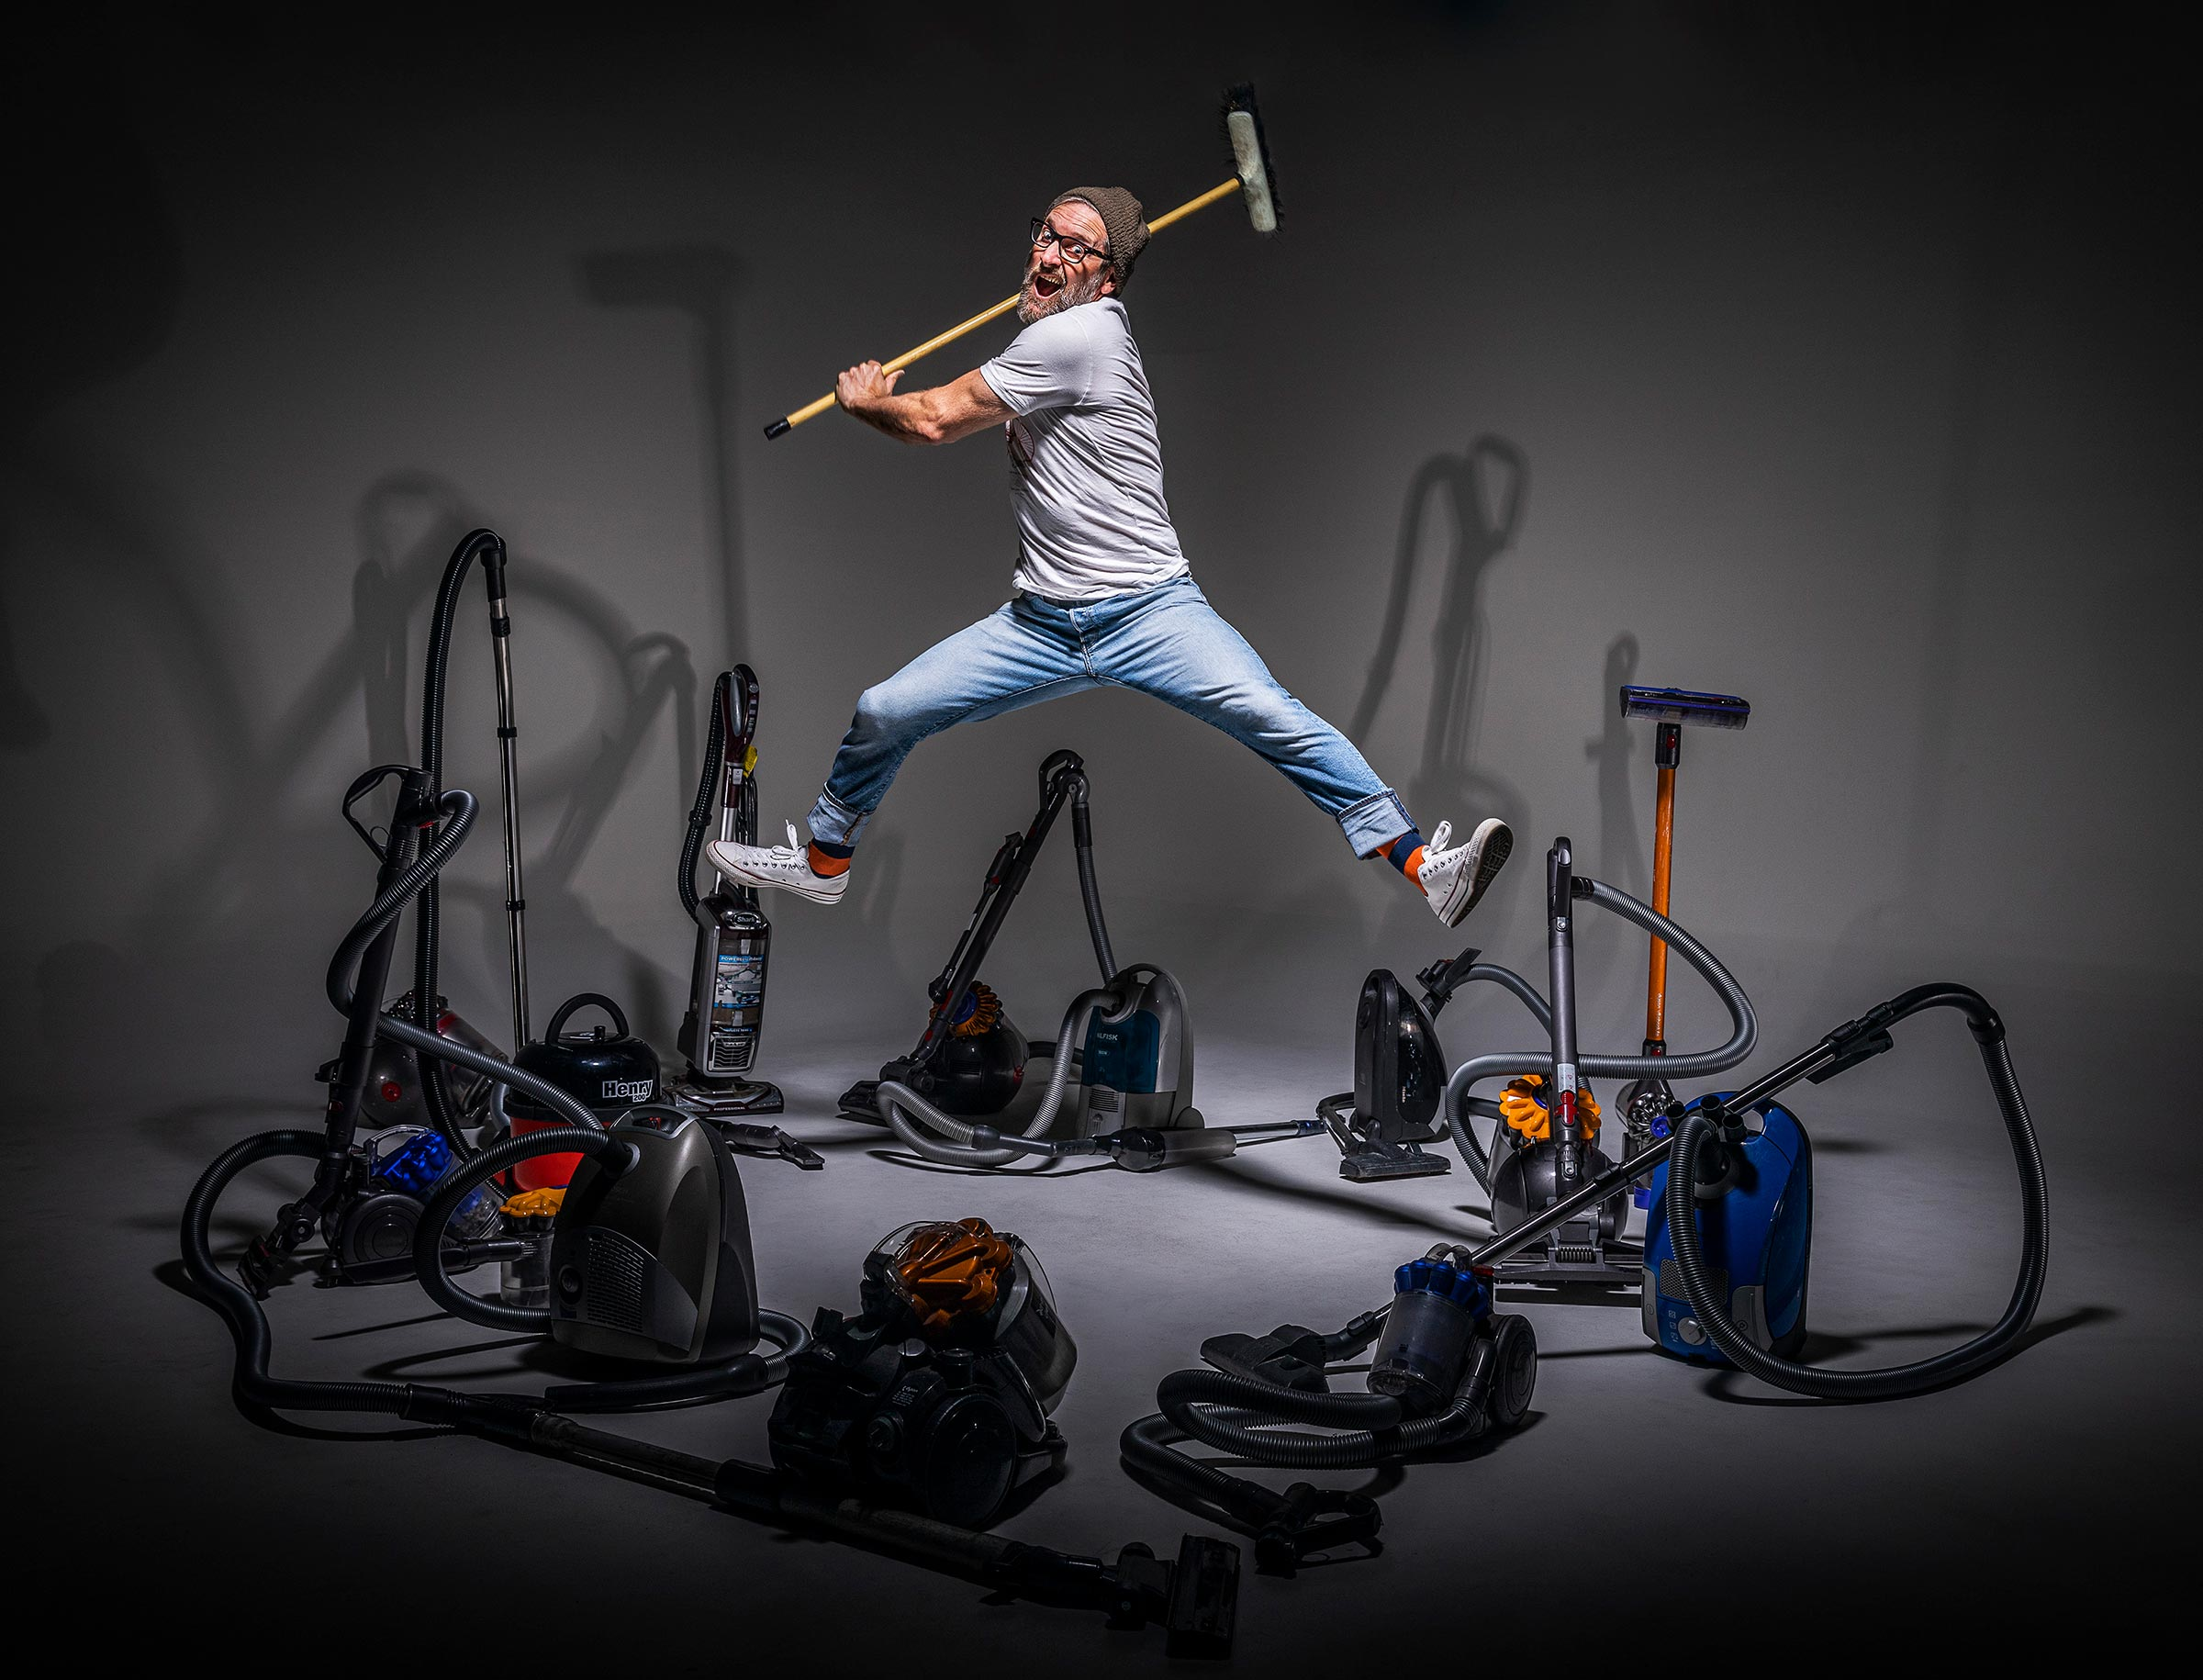 man holding a broom about to hit many vacuum cleaners